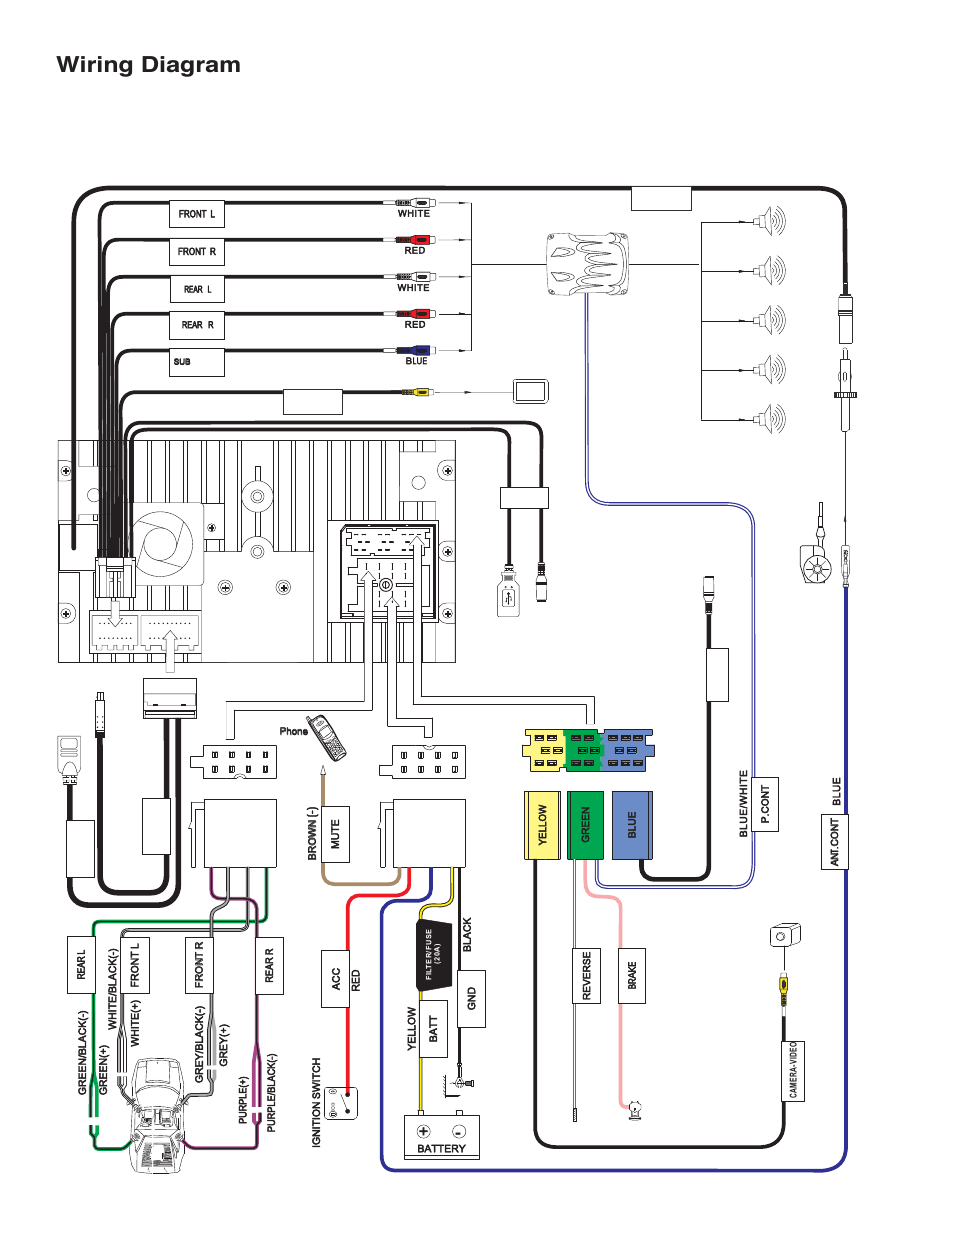 medium resolution of source viper 5900 wiring diagram